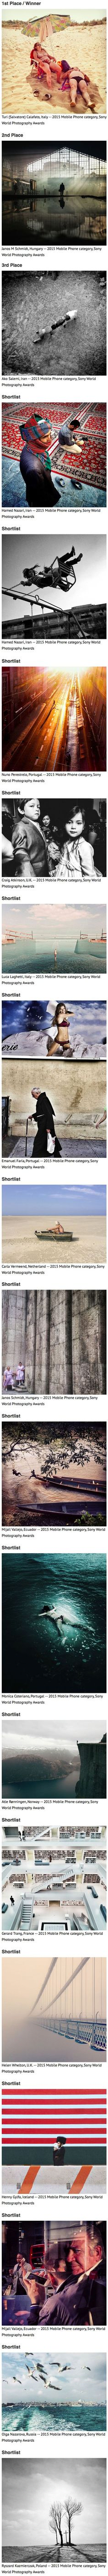 Sony on Tuesday announced the winners of the Sony World Photography Awards' Mobile Phone category, and we're impressed. Mobile alone saw 10,200 photo submissions, and winners in the category were chosen by an online vote from a shortlist of 20 photos.